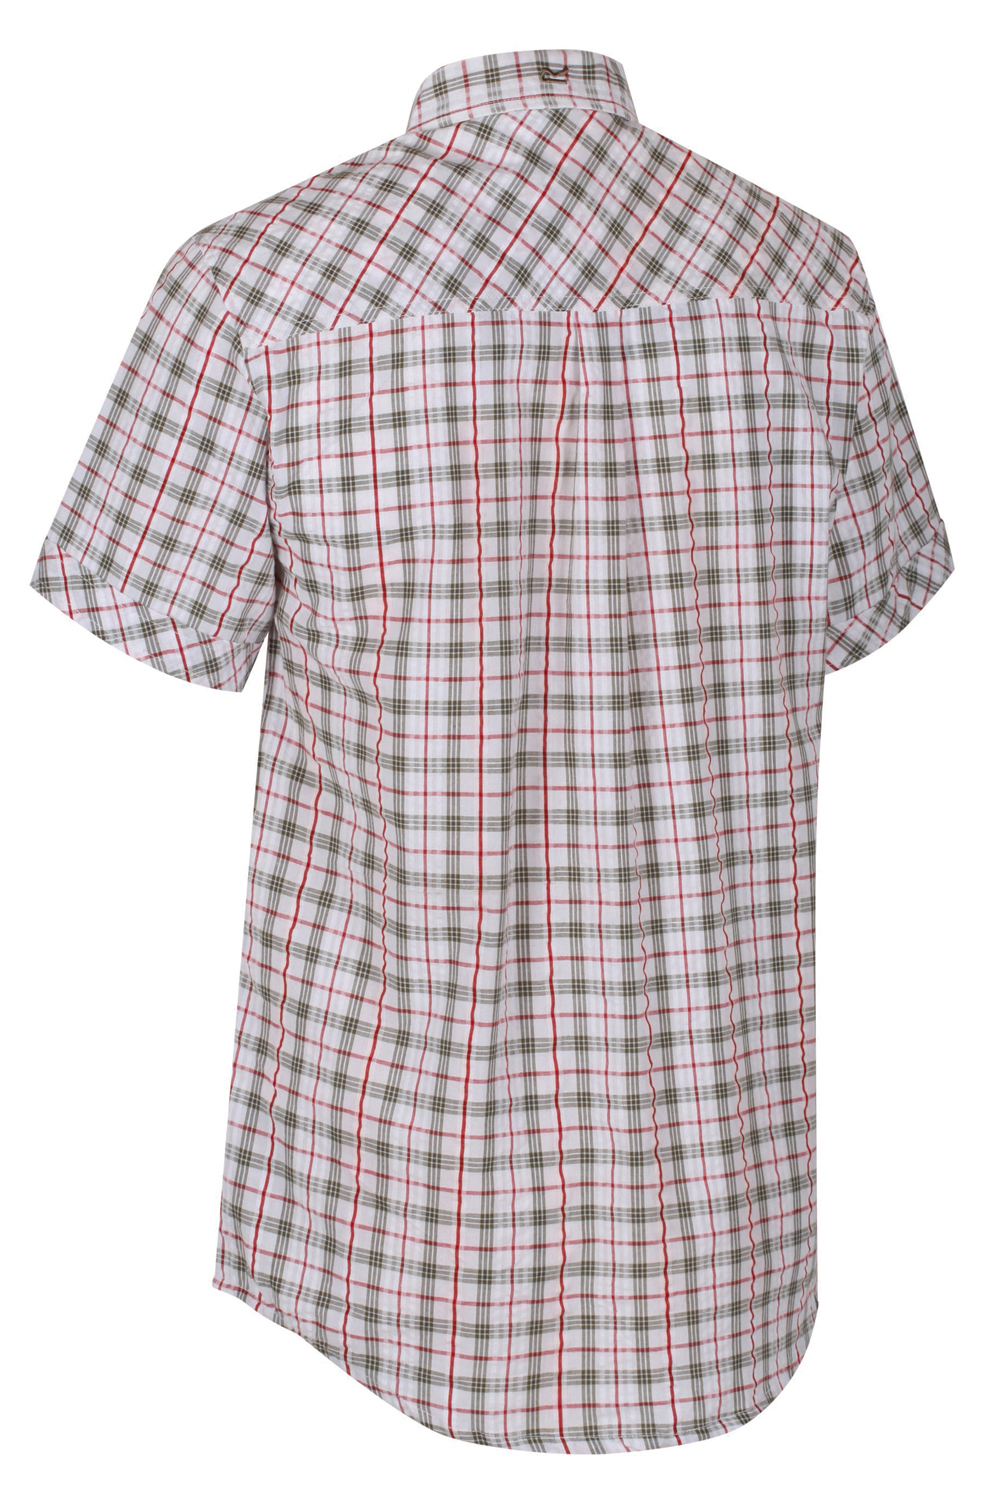 Regatta-Mens-Deakin-II-Coolweave-Cotton-Short-Sleeved-Summer-Check-Shirt-RRP-50 thumbnail 13